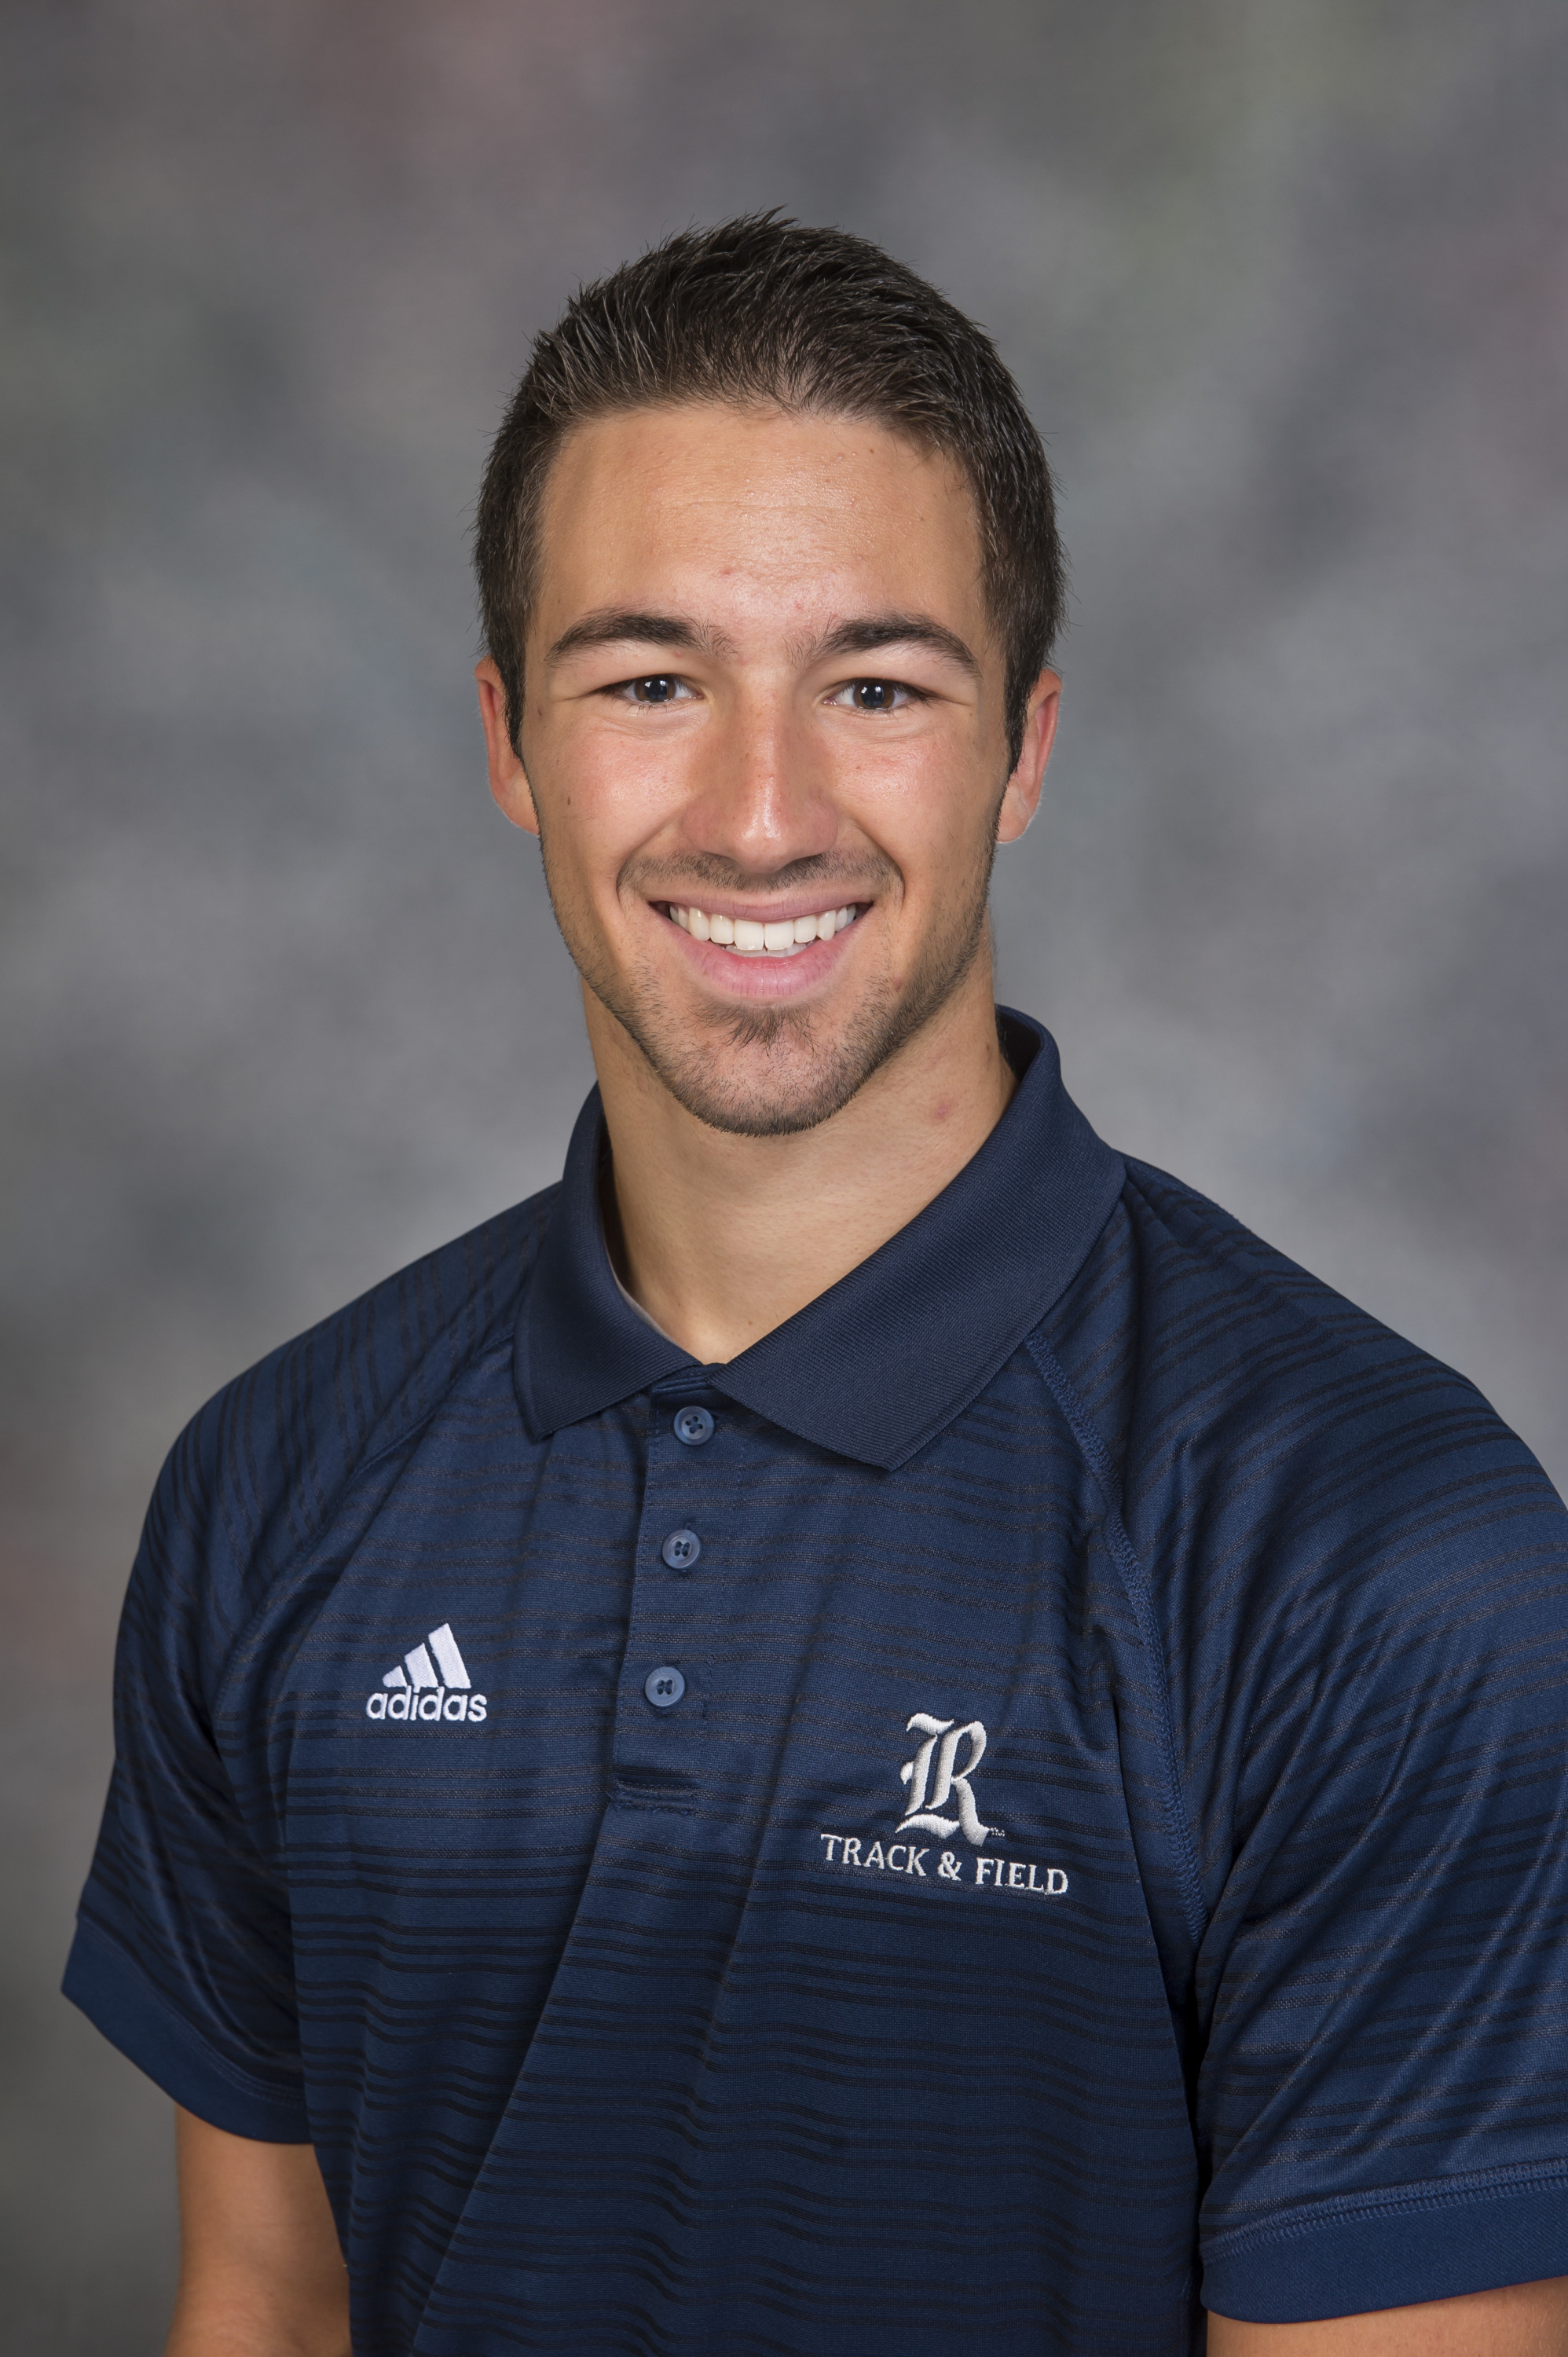 Scott Filip tallied 3191 points to lead the heptathlon at the Howie Ryan Invite.